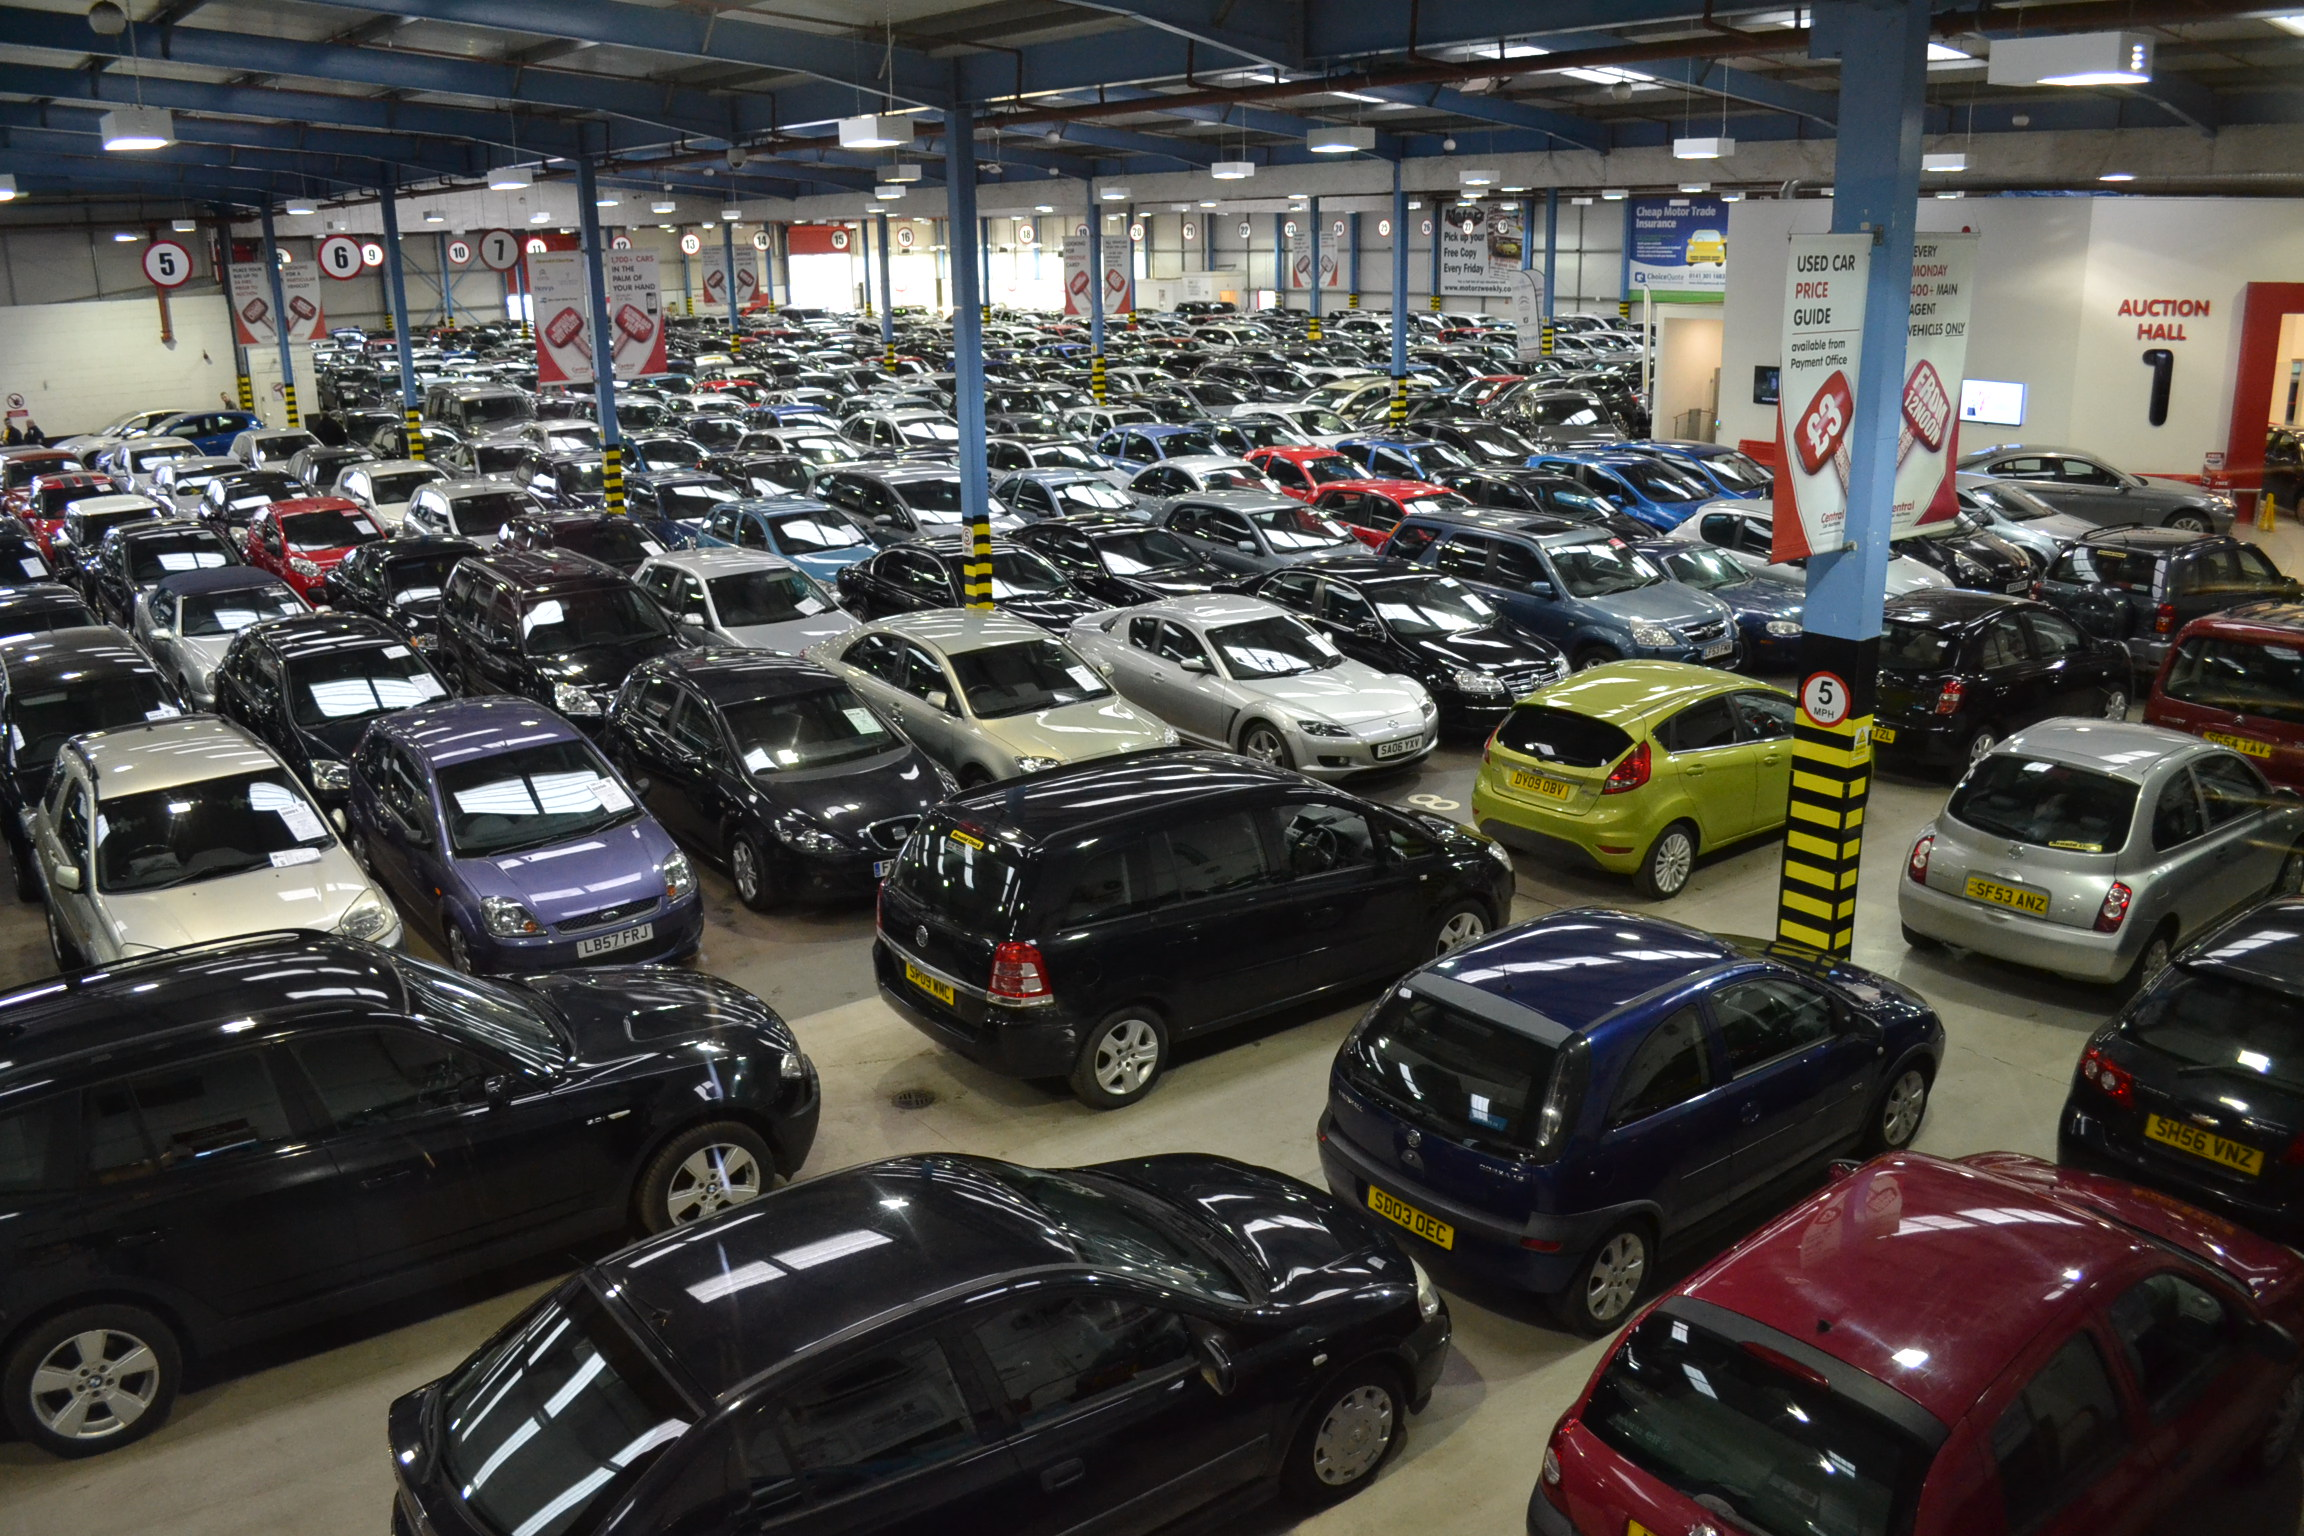 It 39 S Our Fantastic Friday Auction With Over Central